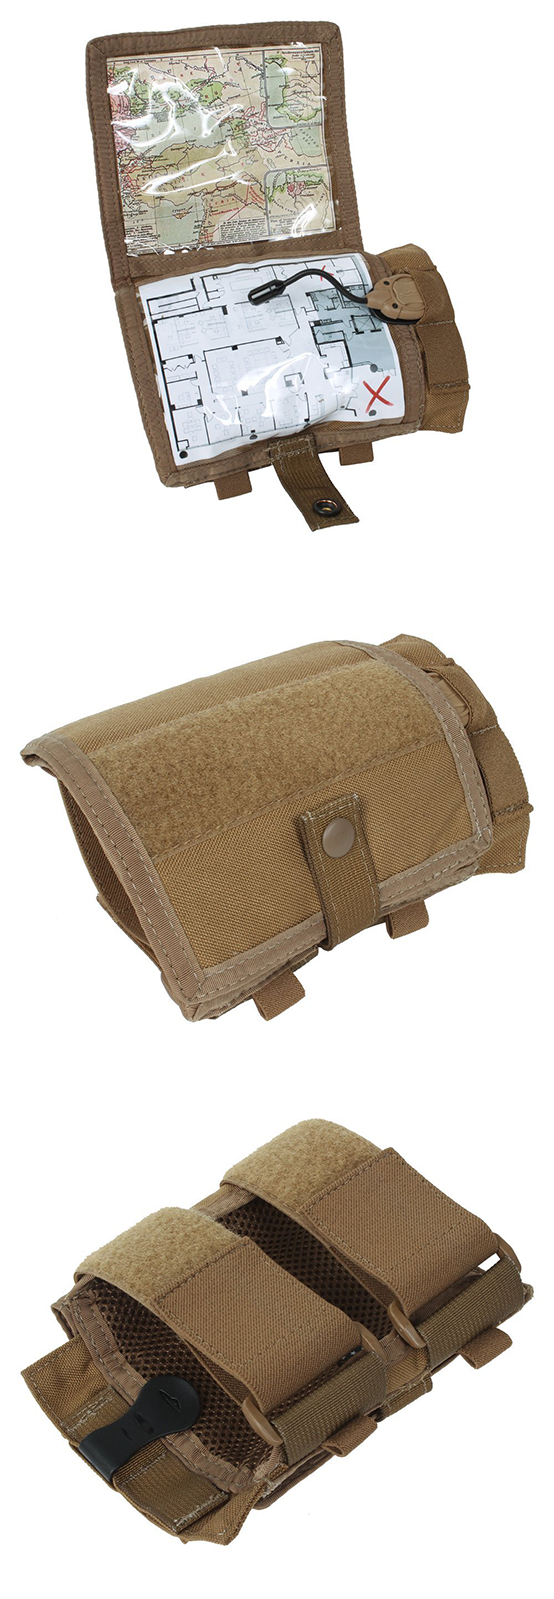 Tactical wrist case. Use it with your map or instructions